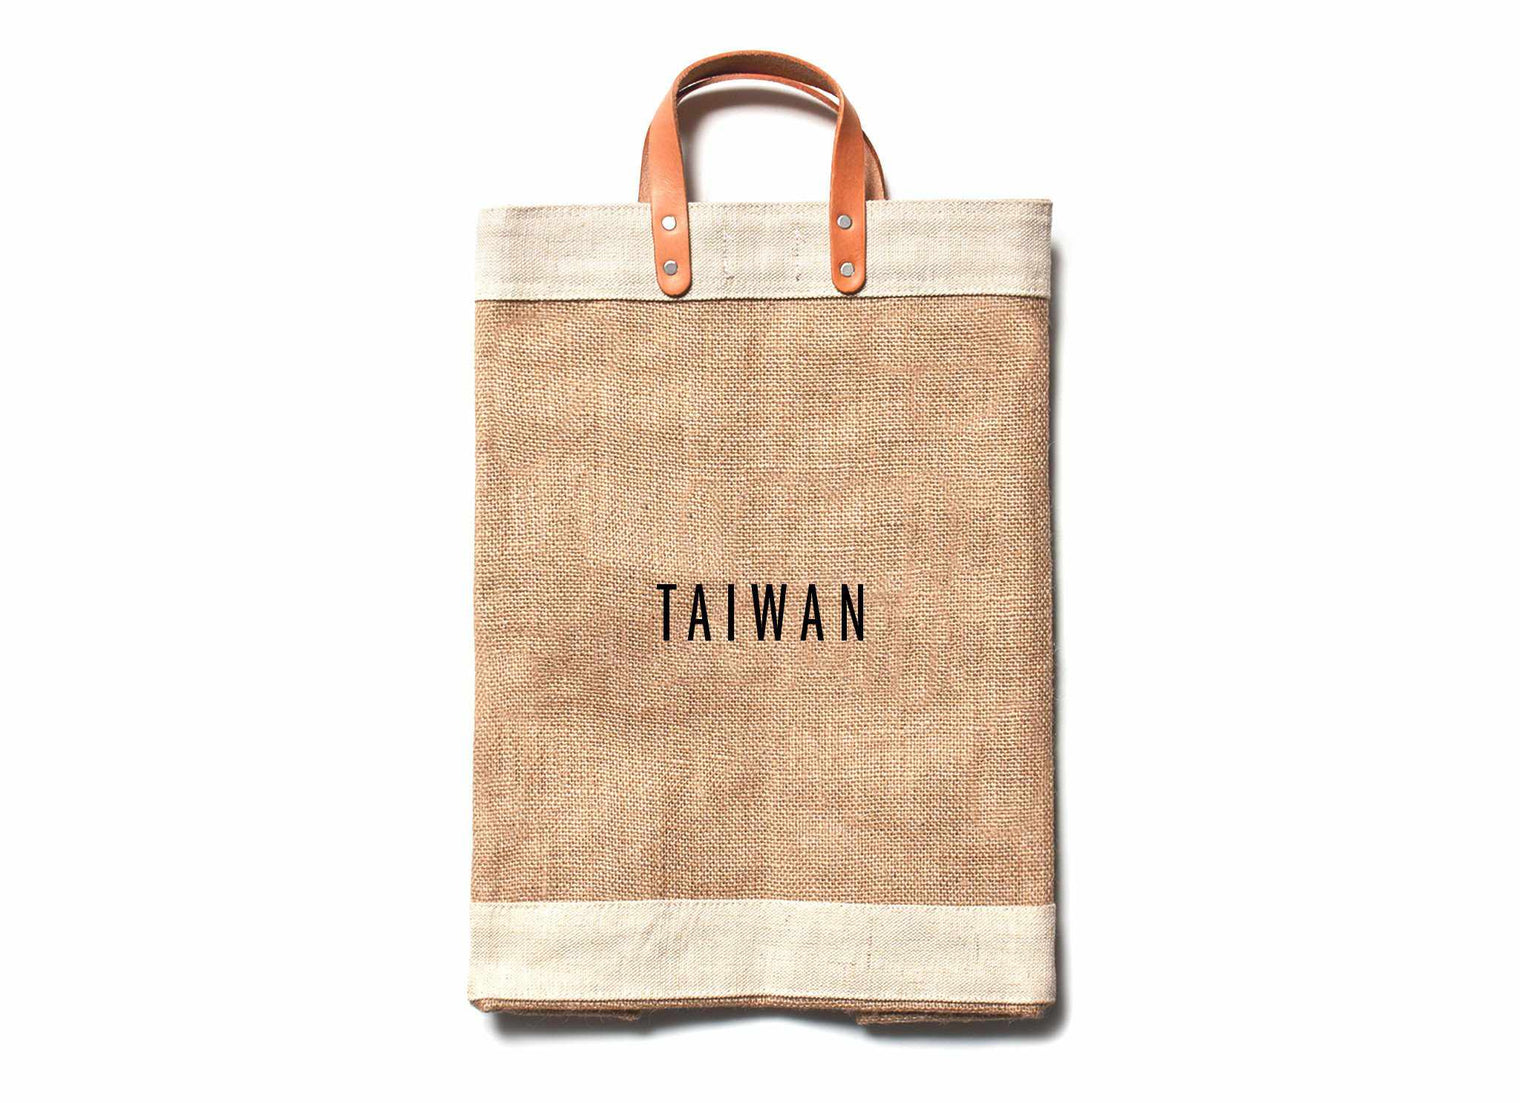 Taiwan City Series Market Bag